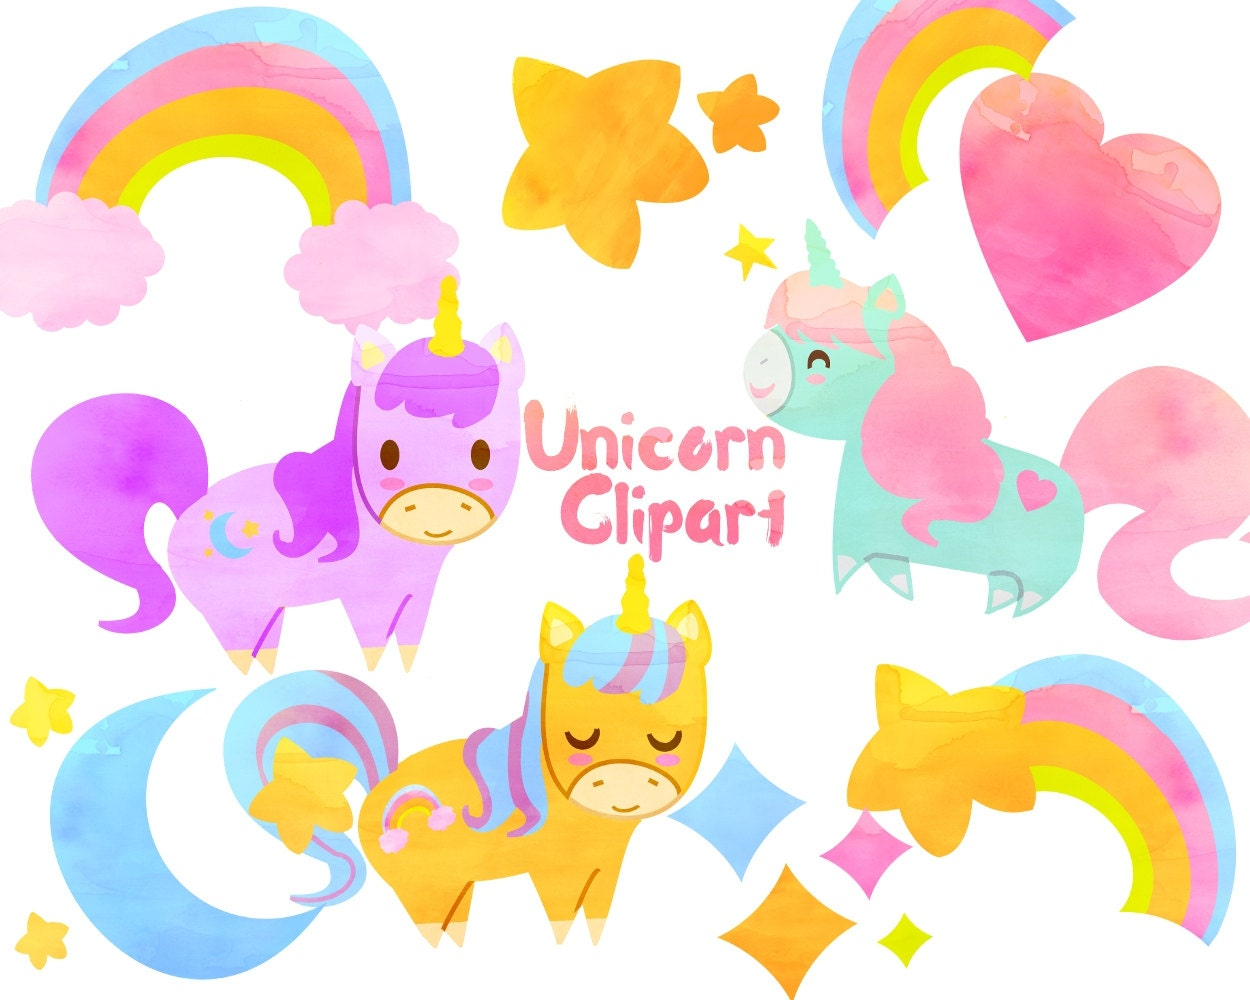 Cute Unicorn clipart, Unicorn clip art, Watercolor clipart for personal and commercial use ...